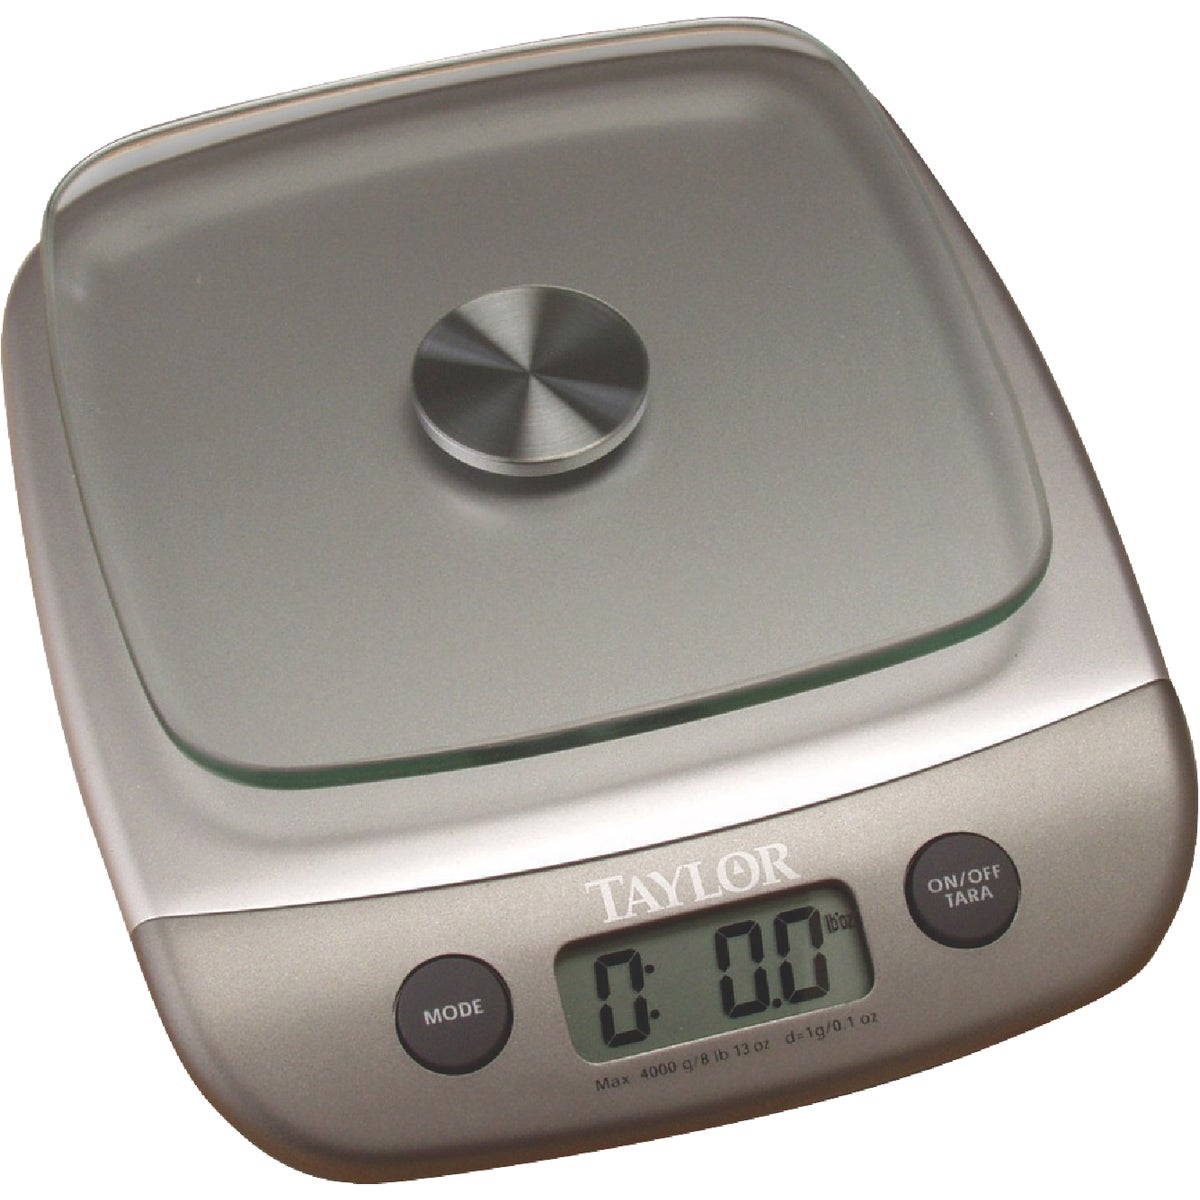 8LB DIGITAL FOOD SCALE